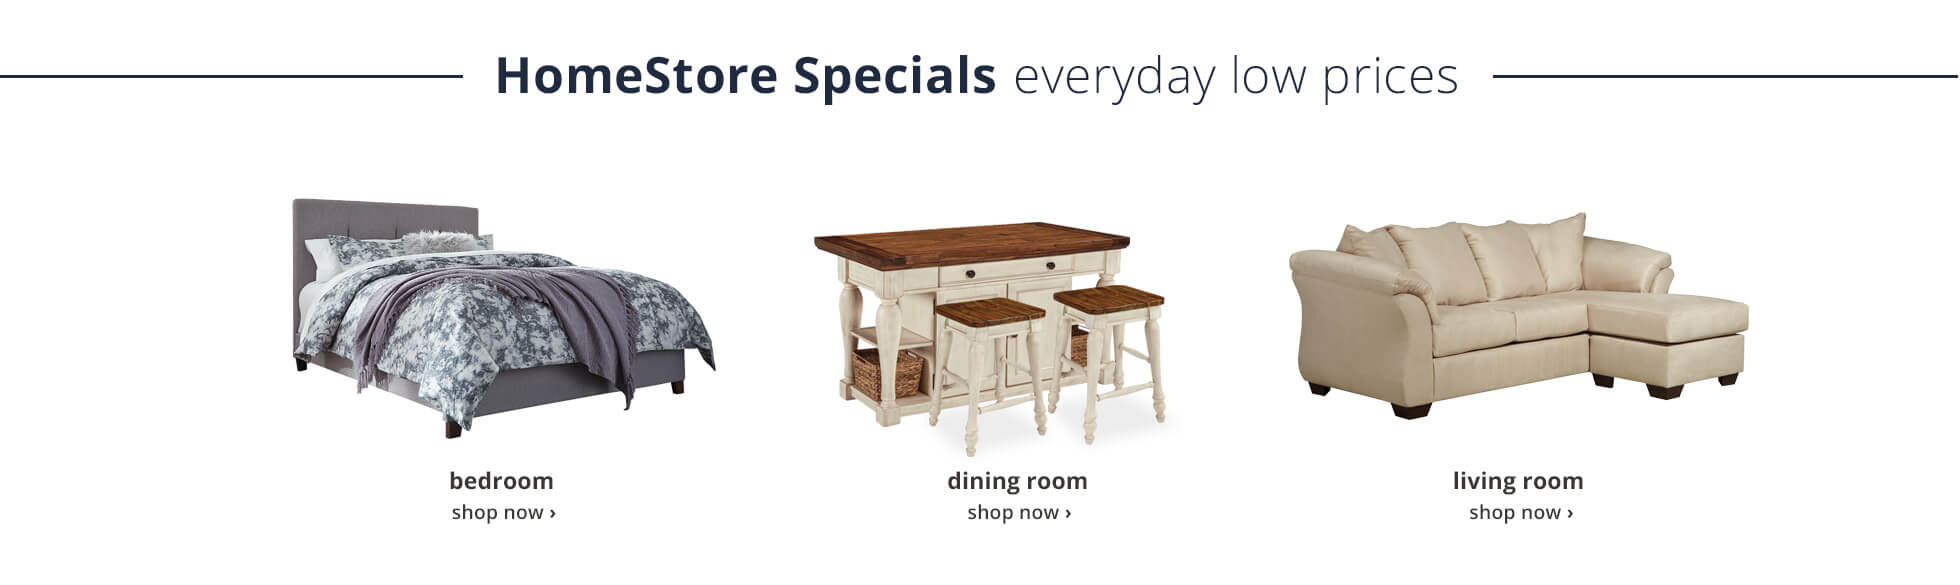 HomeStore Specials everyday low prices